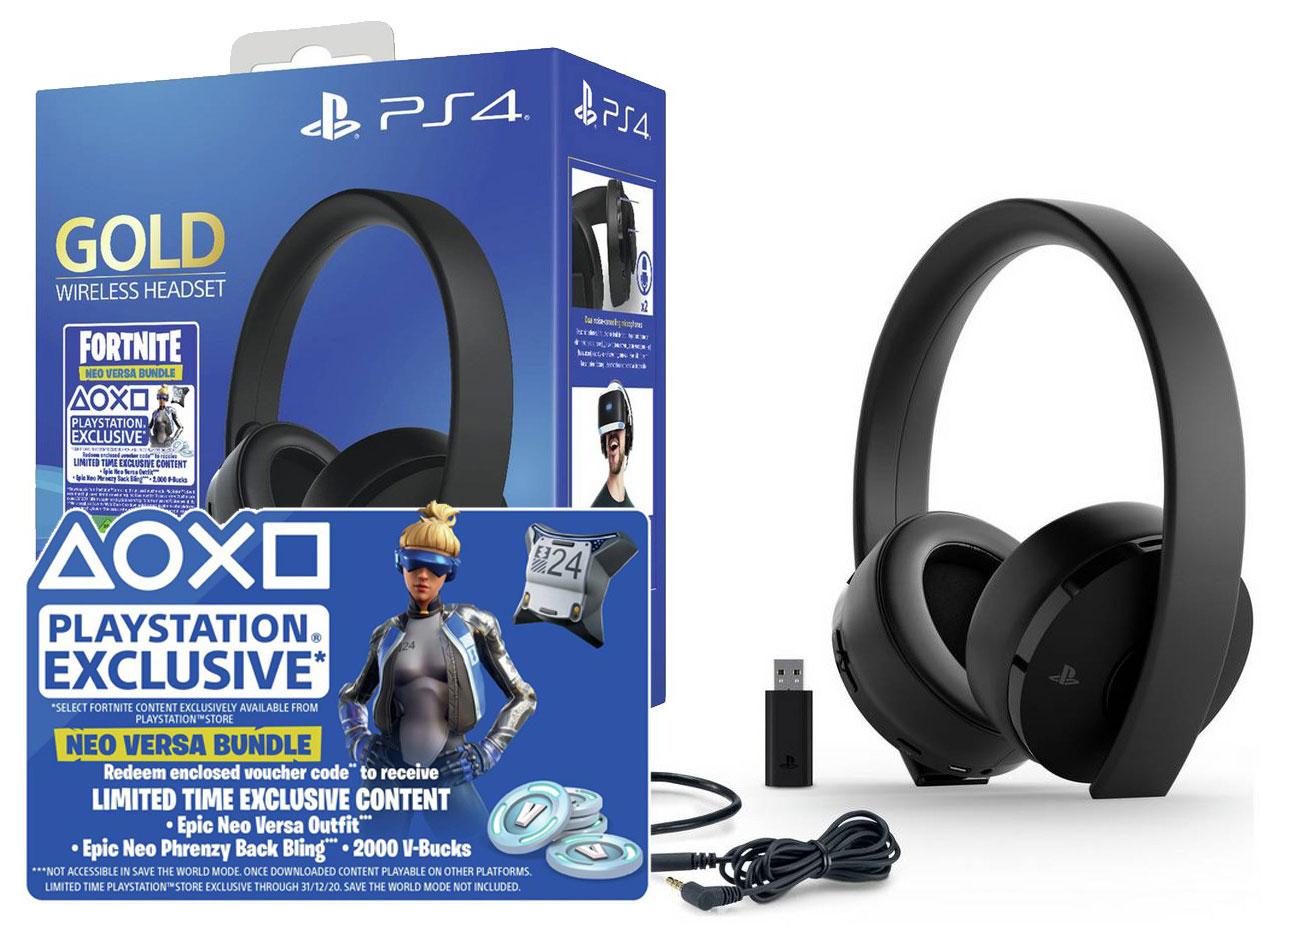 Sony Wireless Gold 7.1 Fortnite PS4 headset